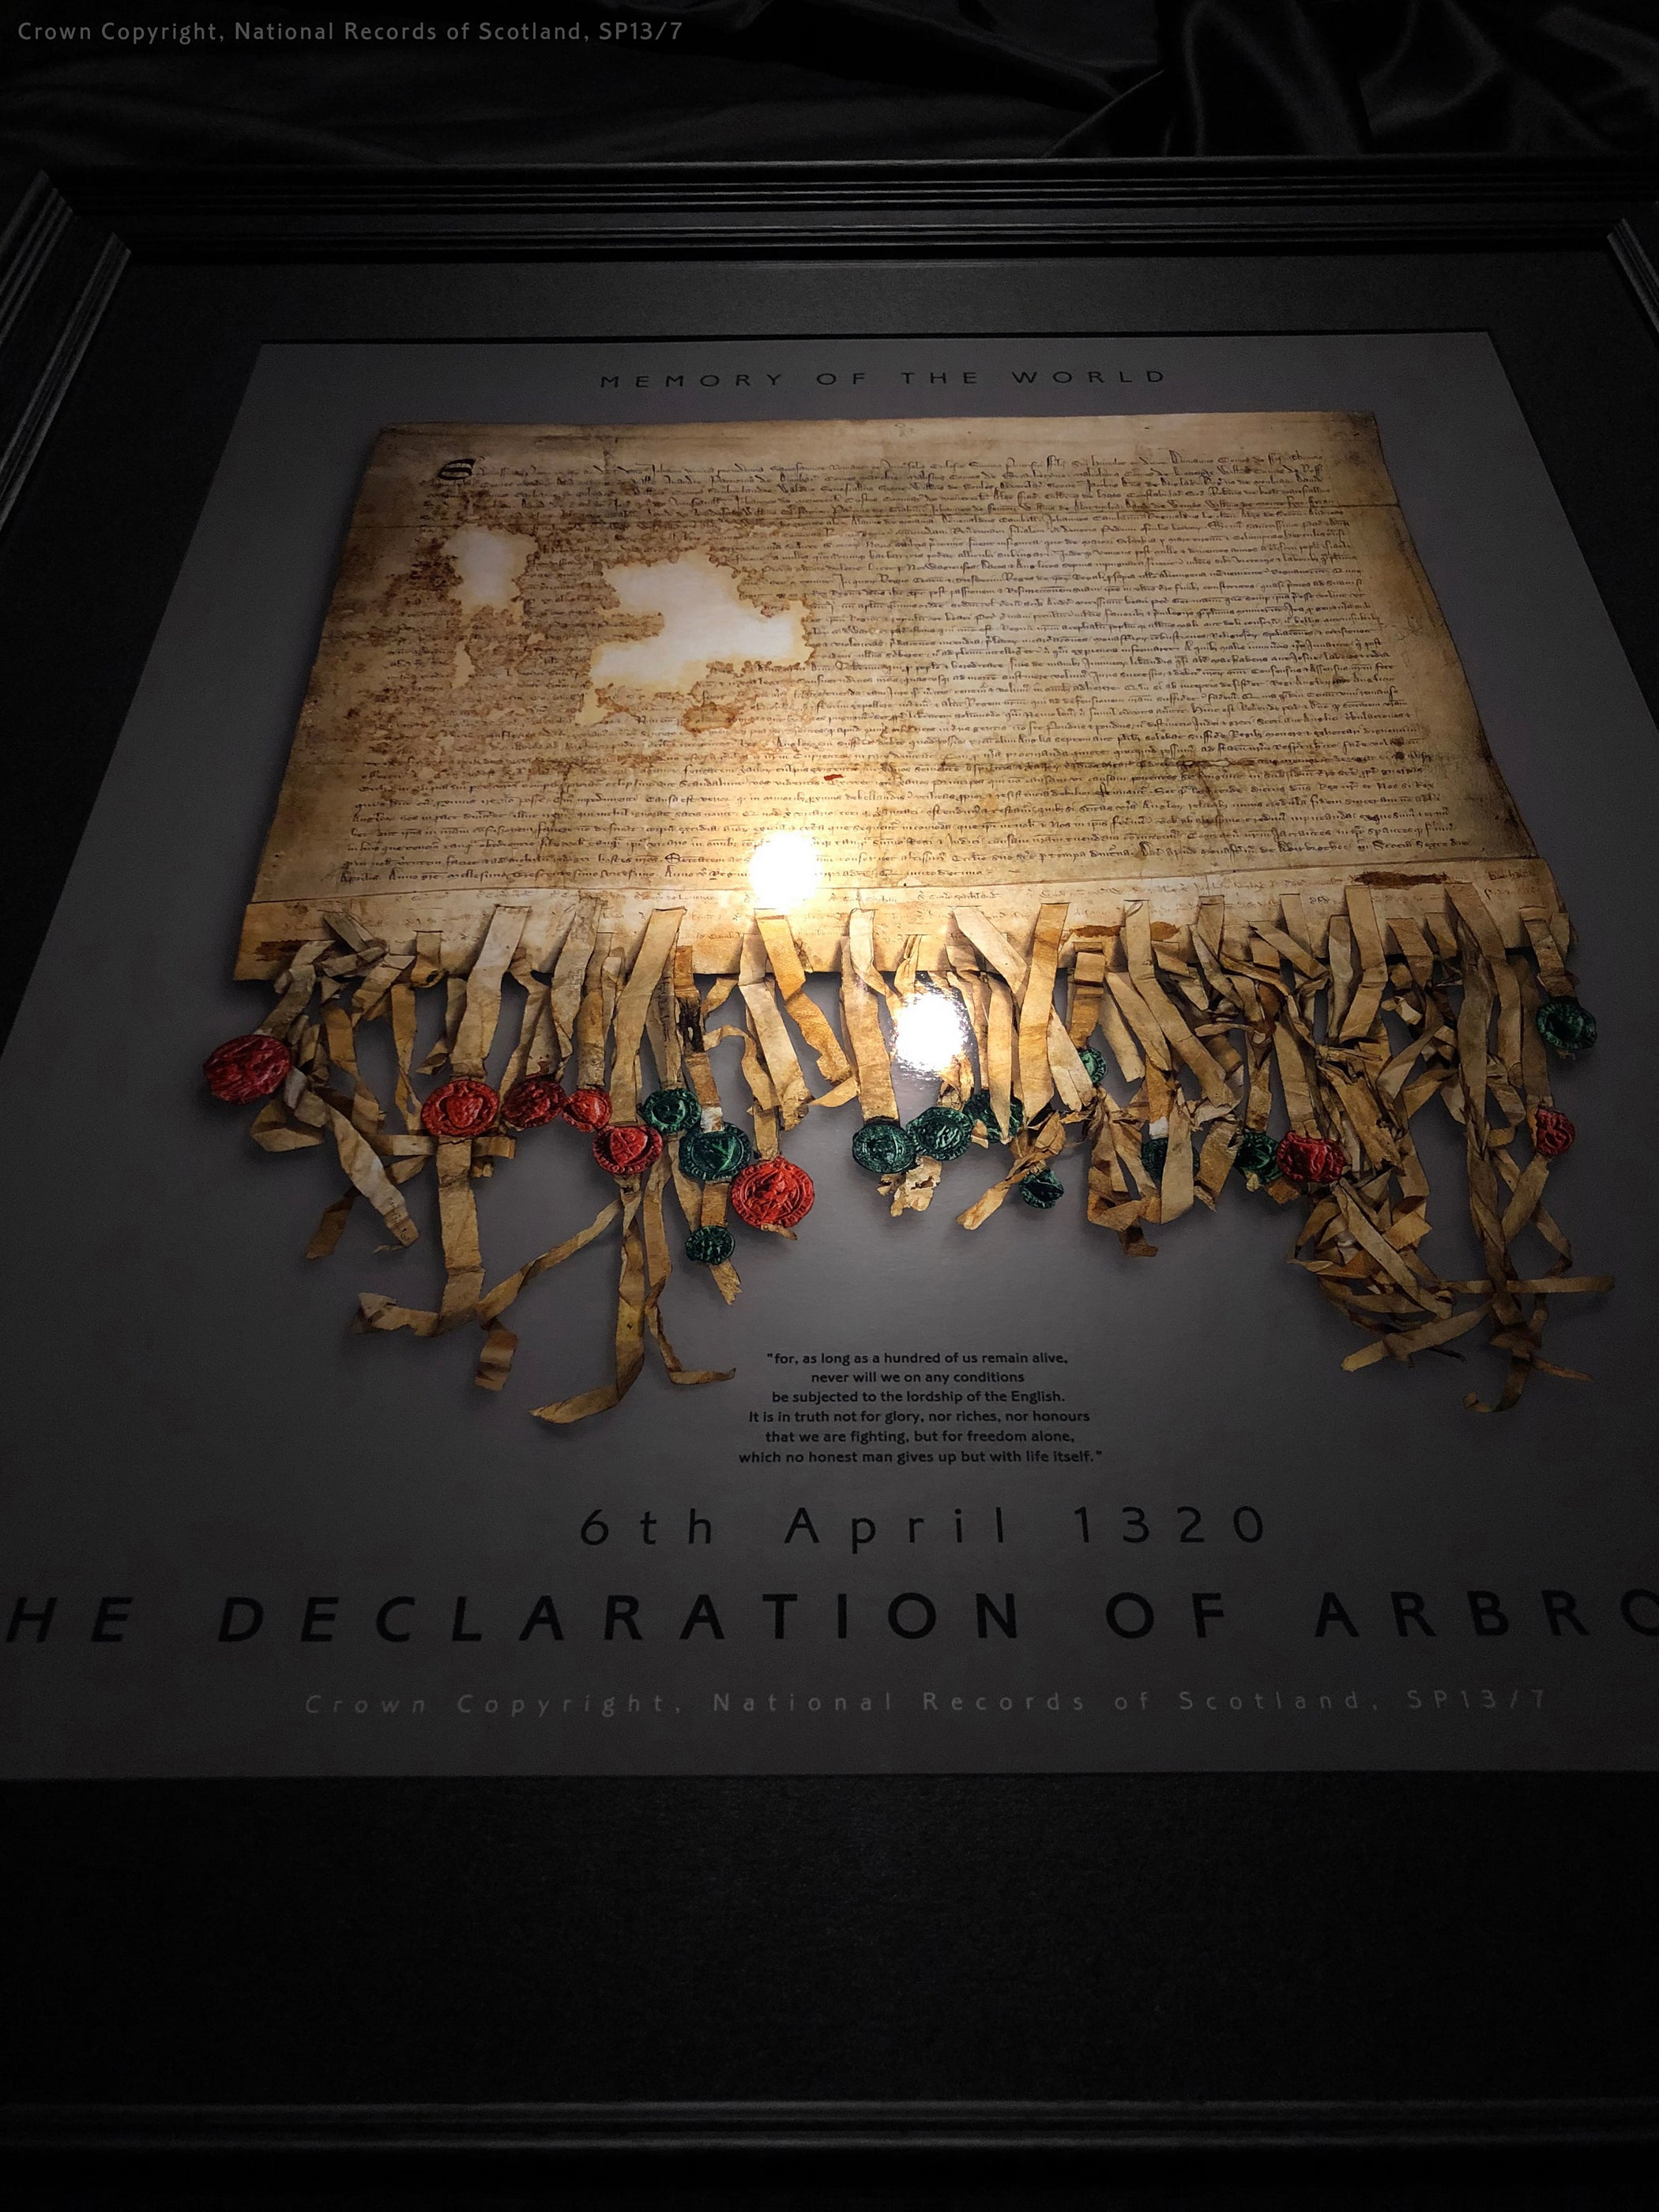 The Declaration of Arbroath Gold Metallic Print Editions - Pewter - with spotlight